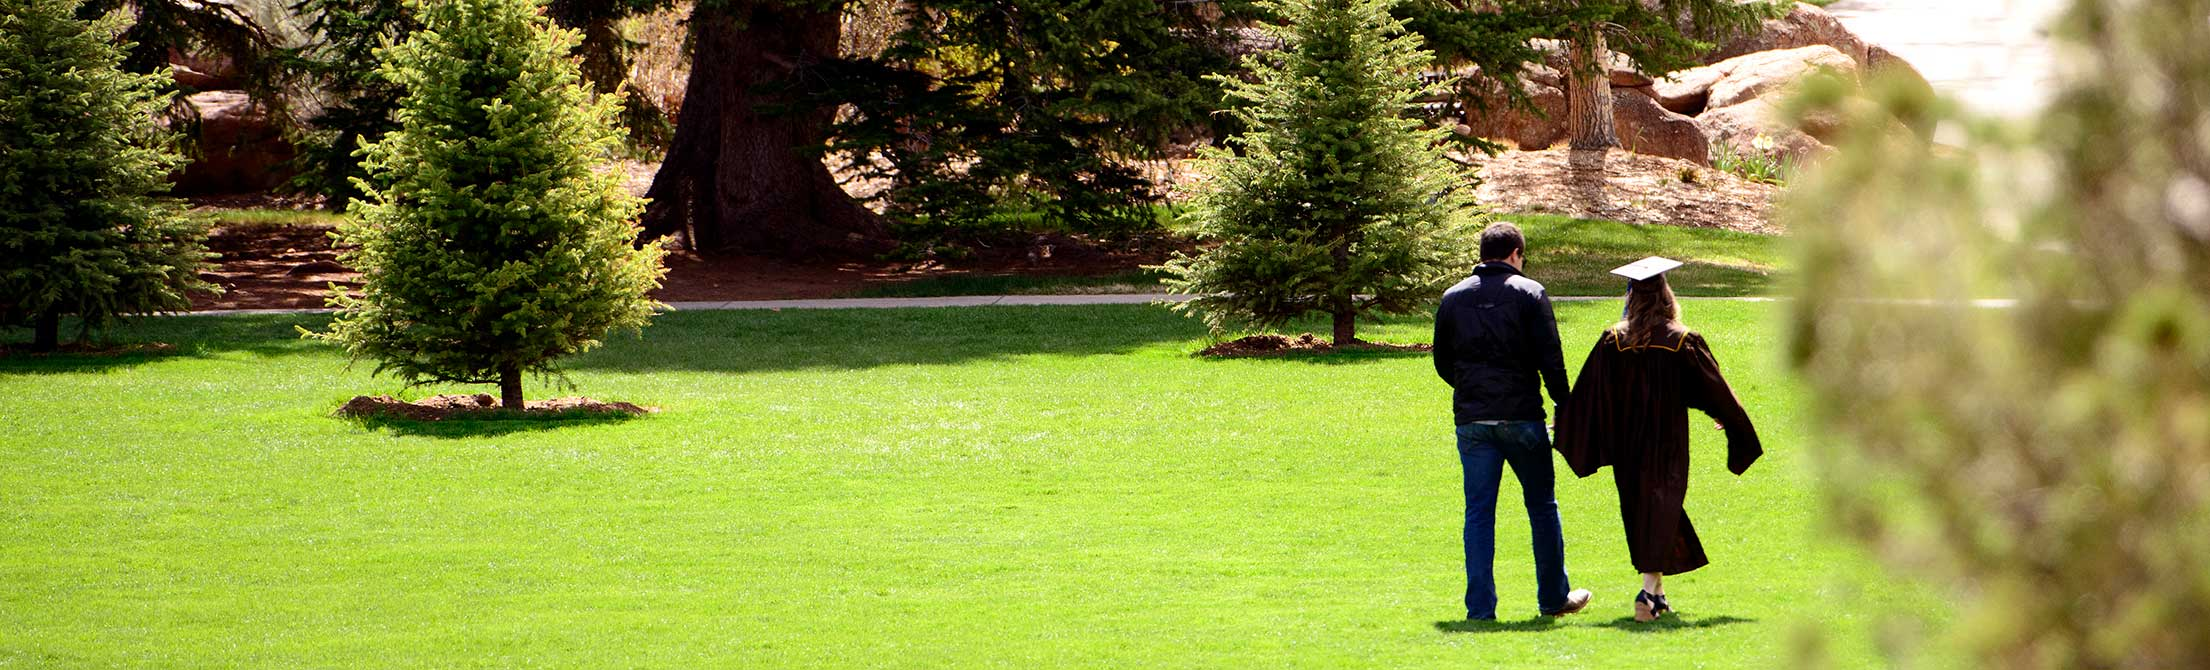 Two graduates walking on a grassy field